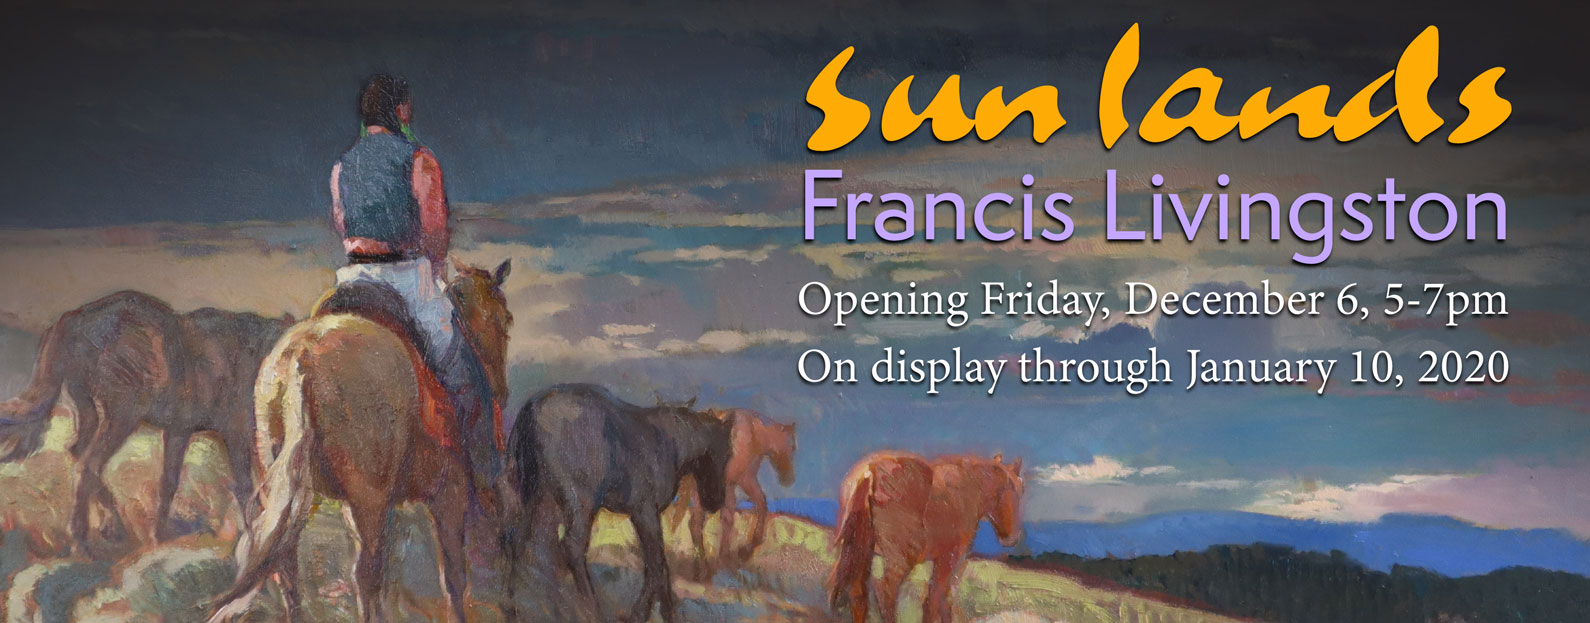 Francis Livingston: Sunlands